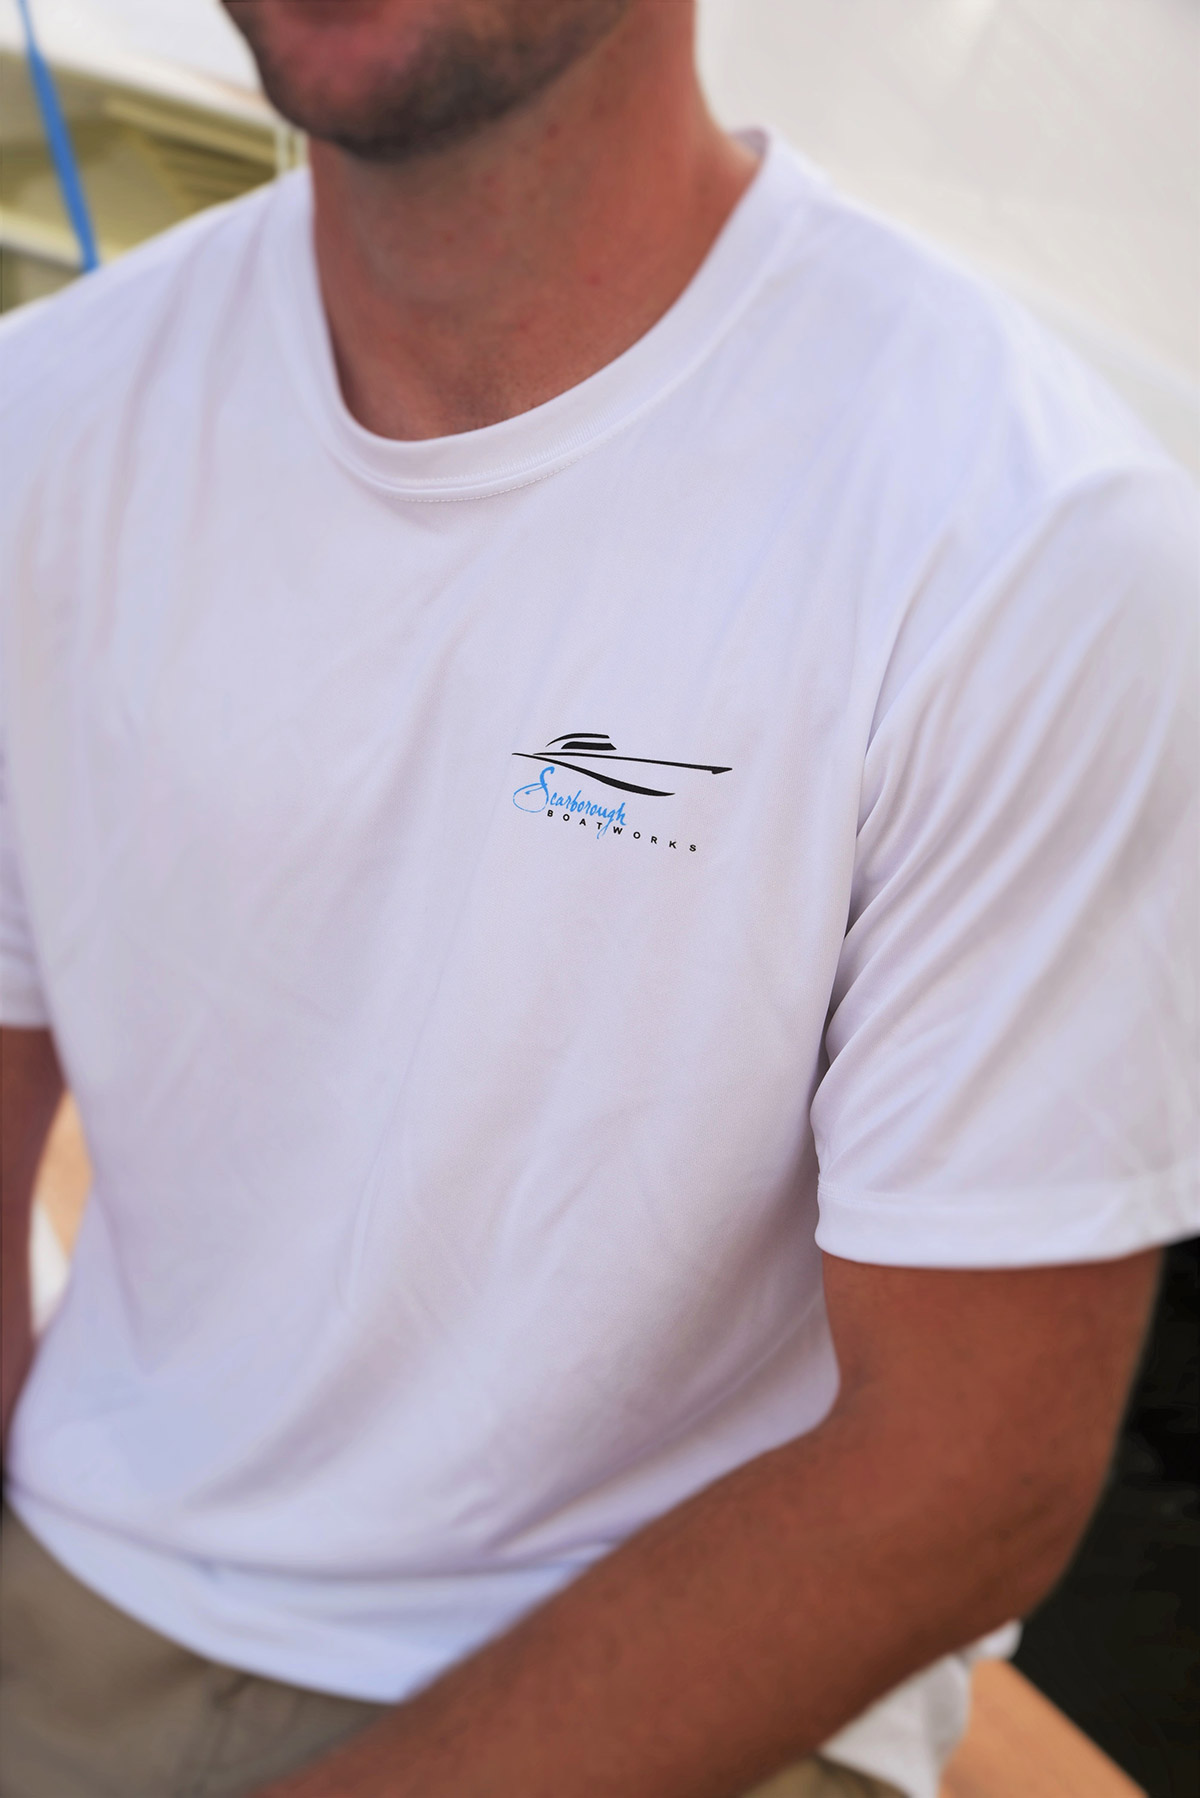 scarborough-boatworks-merchandise-GAL_5854-white-moisture-wicking-t